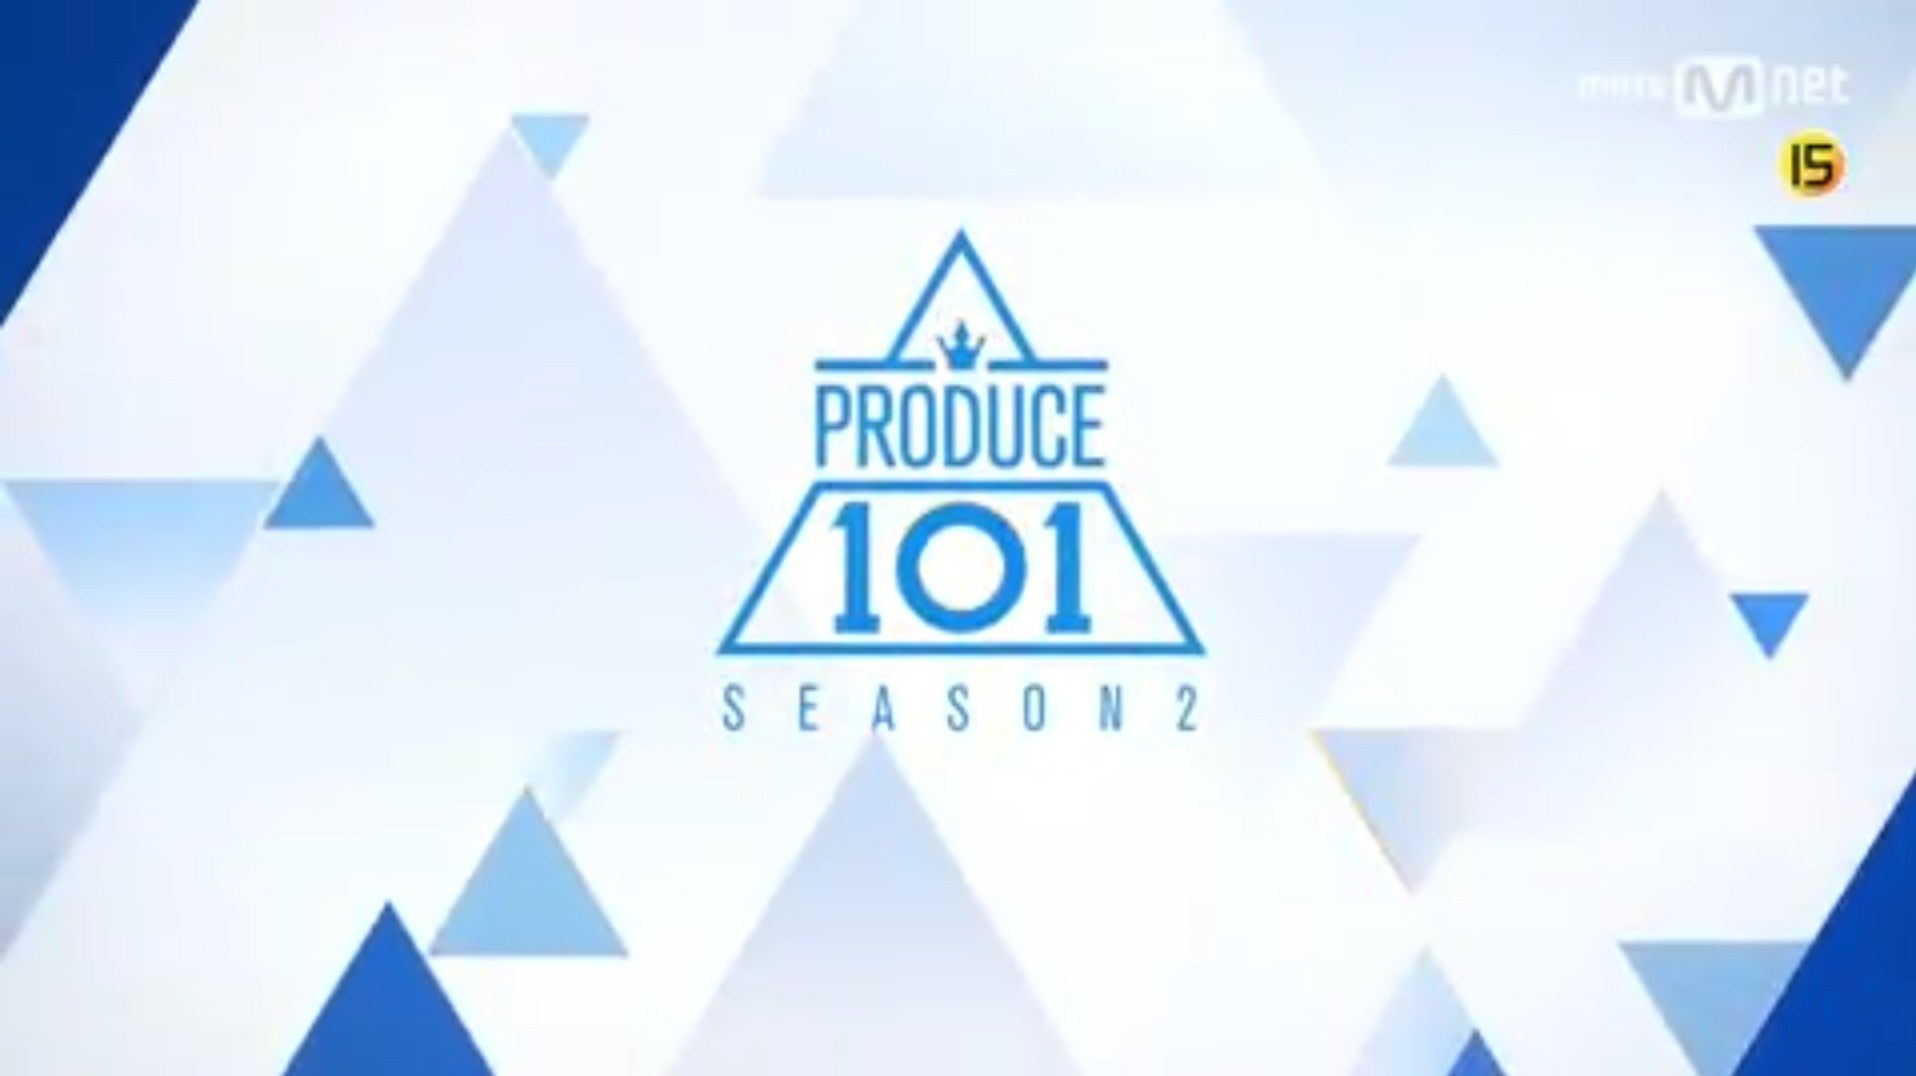 home design tv html with Ini Dia Nama Resmi Grup Proyek Produce 101 Season 2 on A City Where You Want To Step Outside And Inhale 9727019 in addition I Love Admin Badges P 6567 further Diese Kreaturen Kennen Weder Krebs Noch Schmerz together with Karizma Album Background Photo Shop 6 besides ANKE ENGELKE.